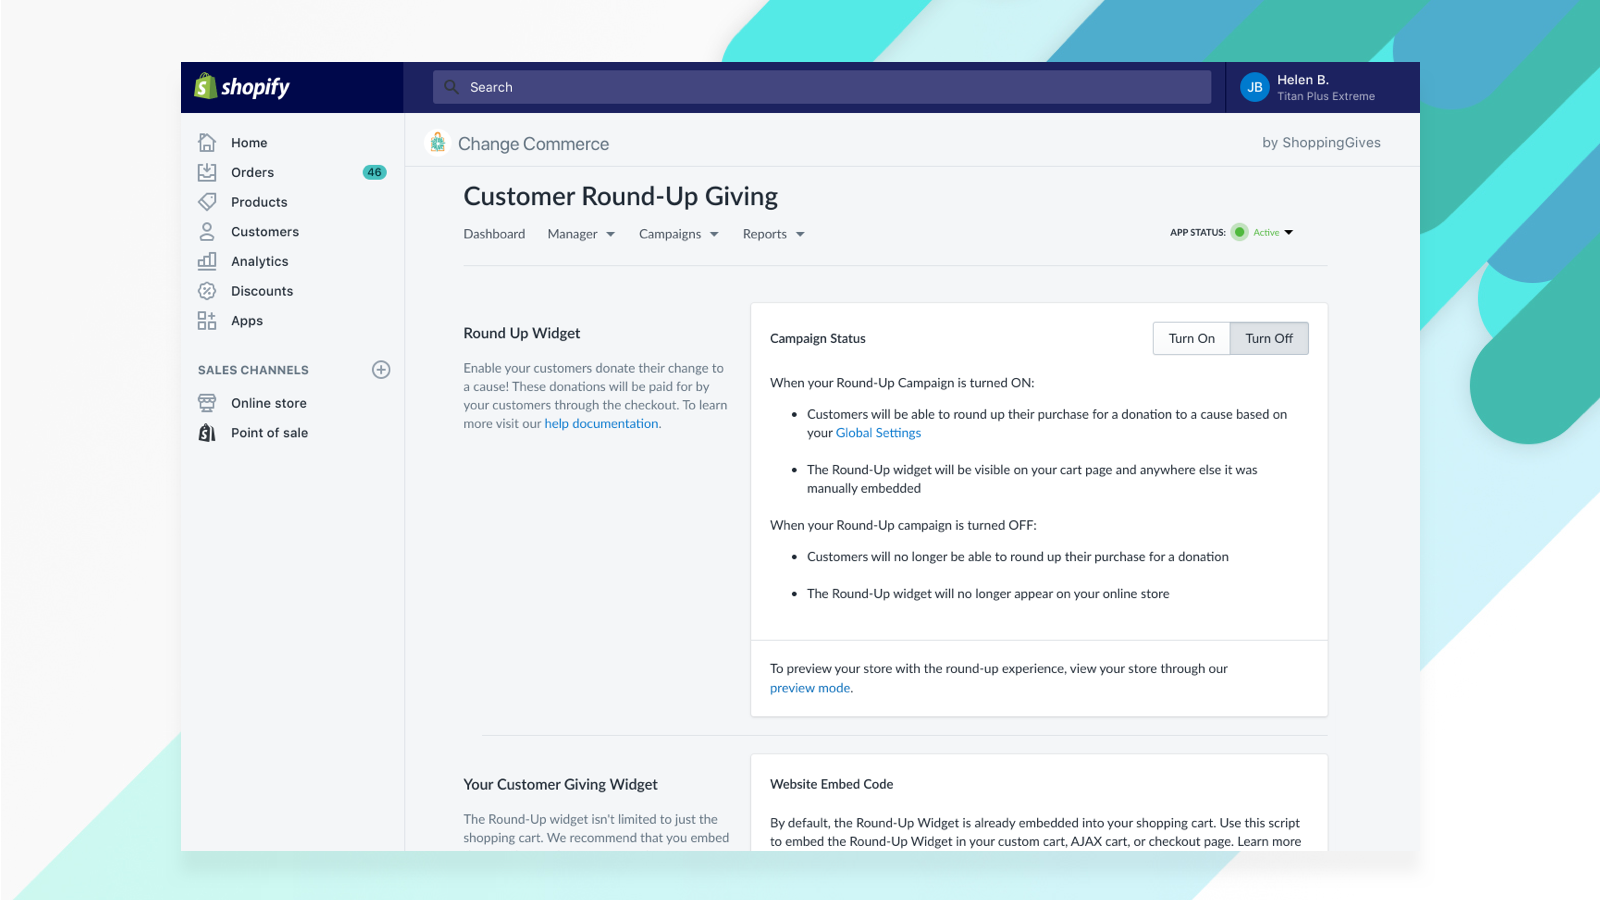 6-Change Commerce - Customer Round-Up Giving